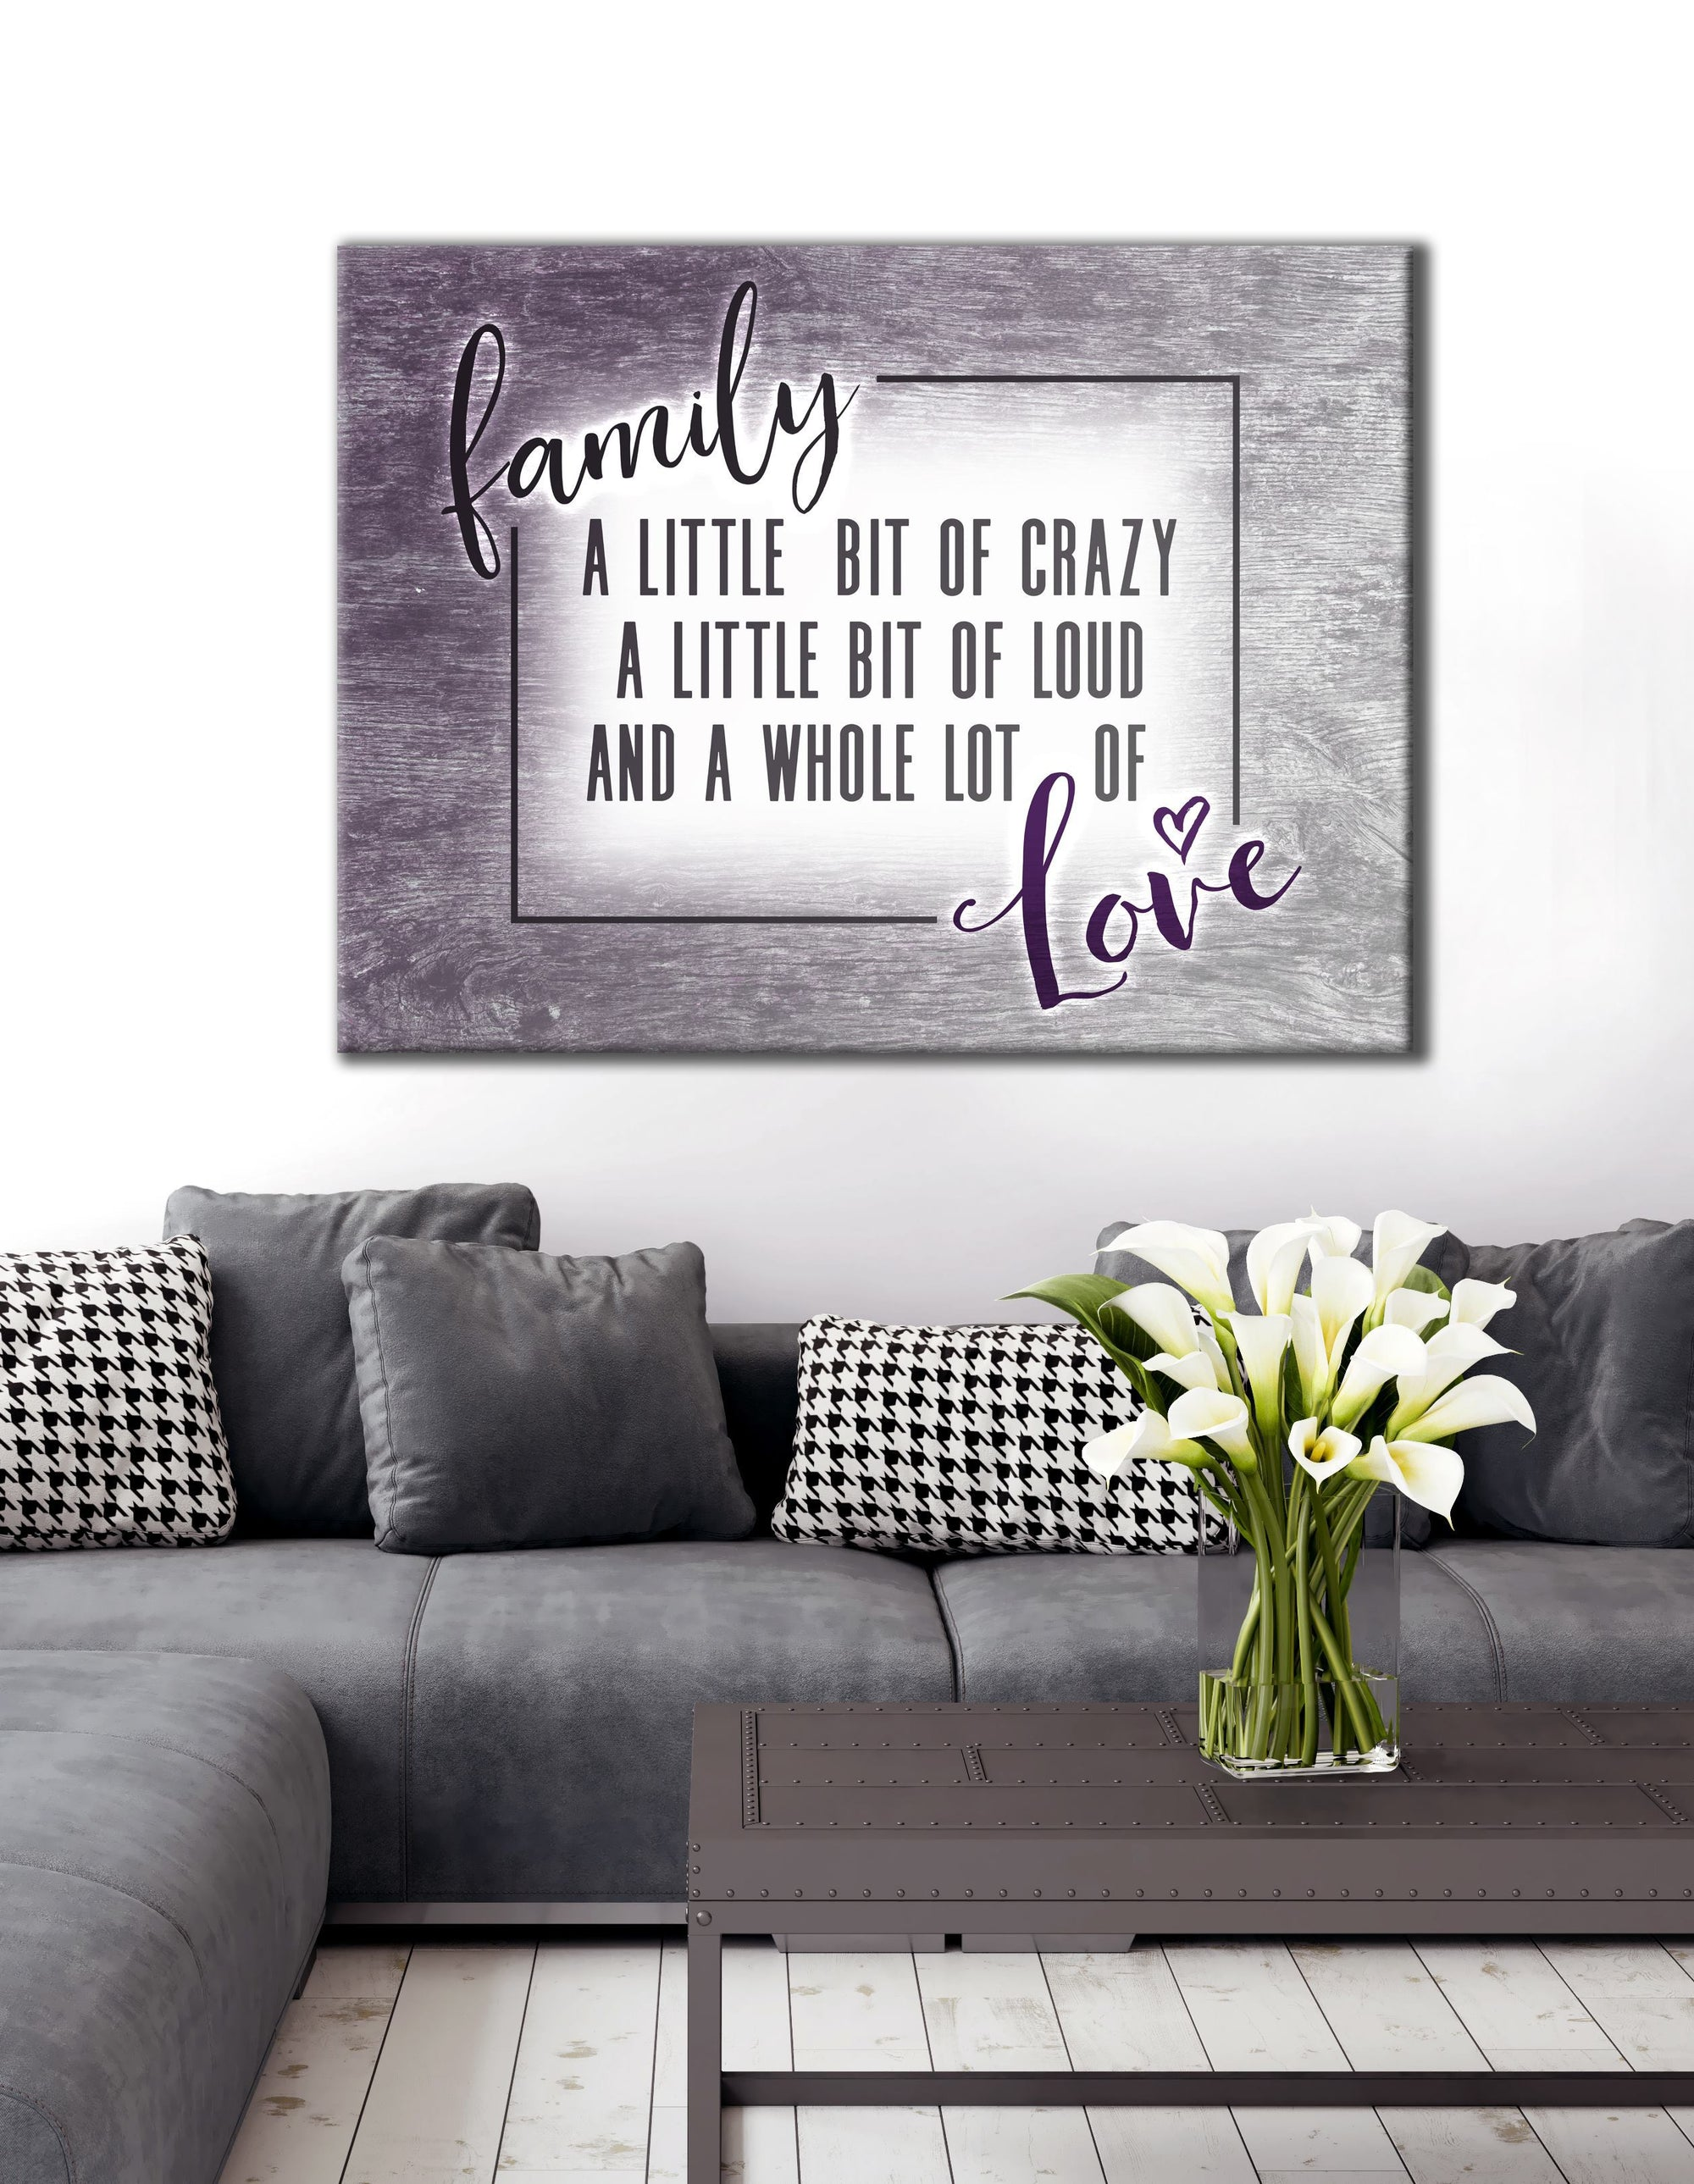 Family Wall Art: Funny Crazy Family Saying (Wood Frame Ready To Hang)